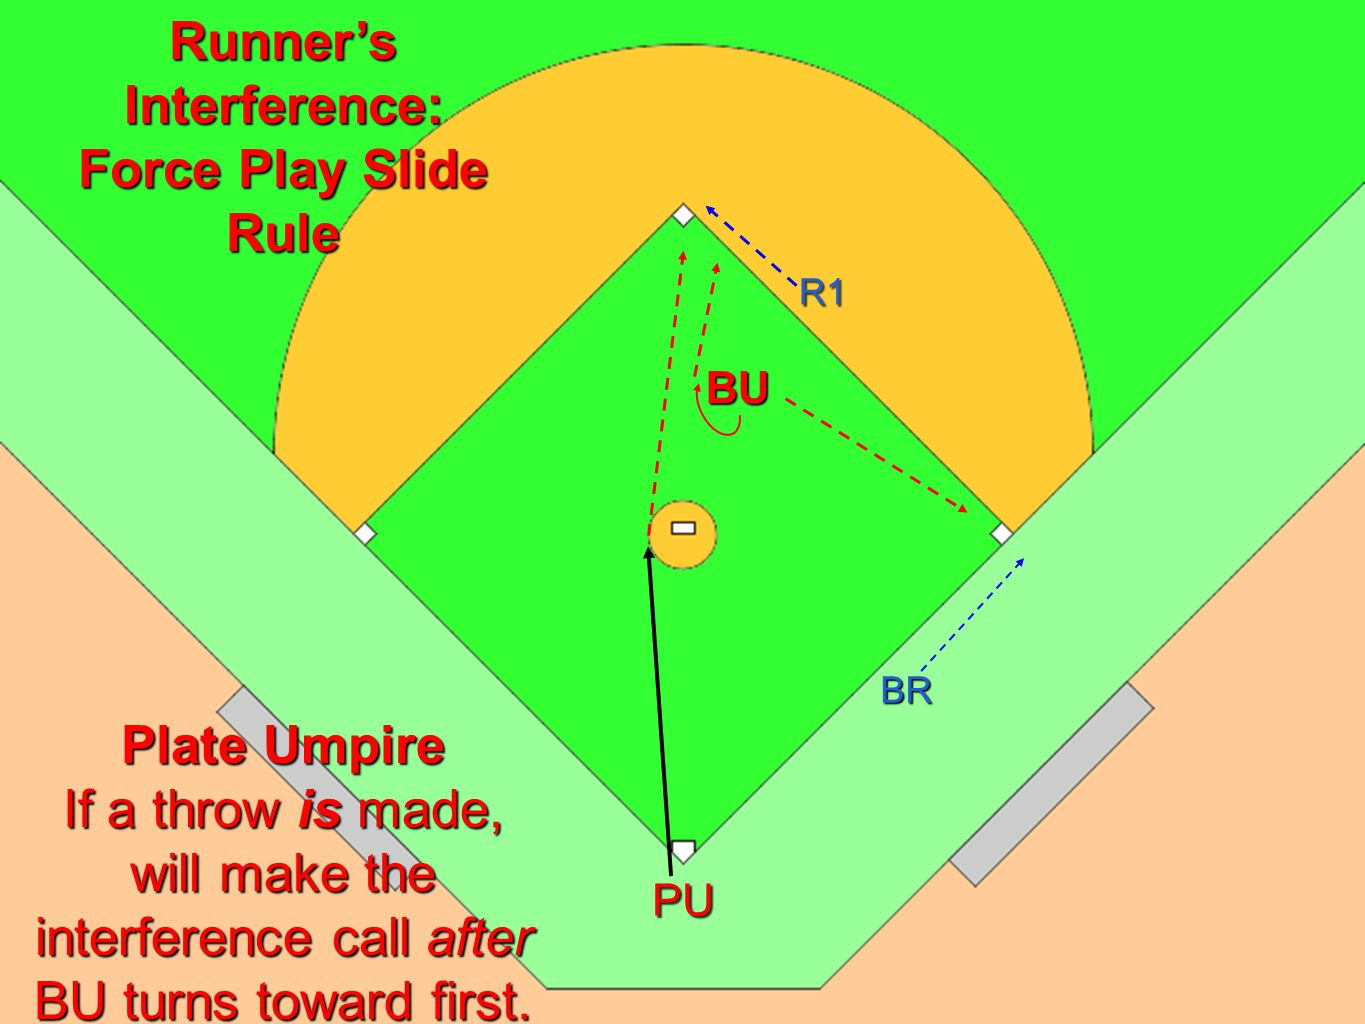 R1 BU PU Runners Interference: Force Play Slide Rule Plate Umpire If a throw is made, will make the interference call after BU turns toward first.